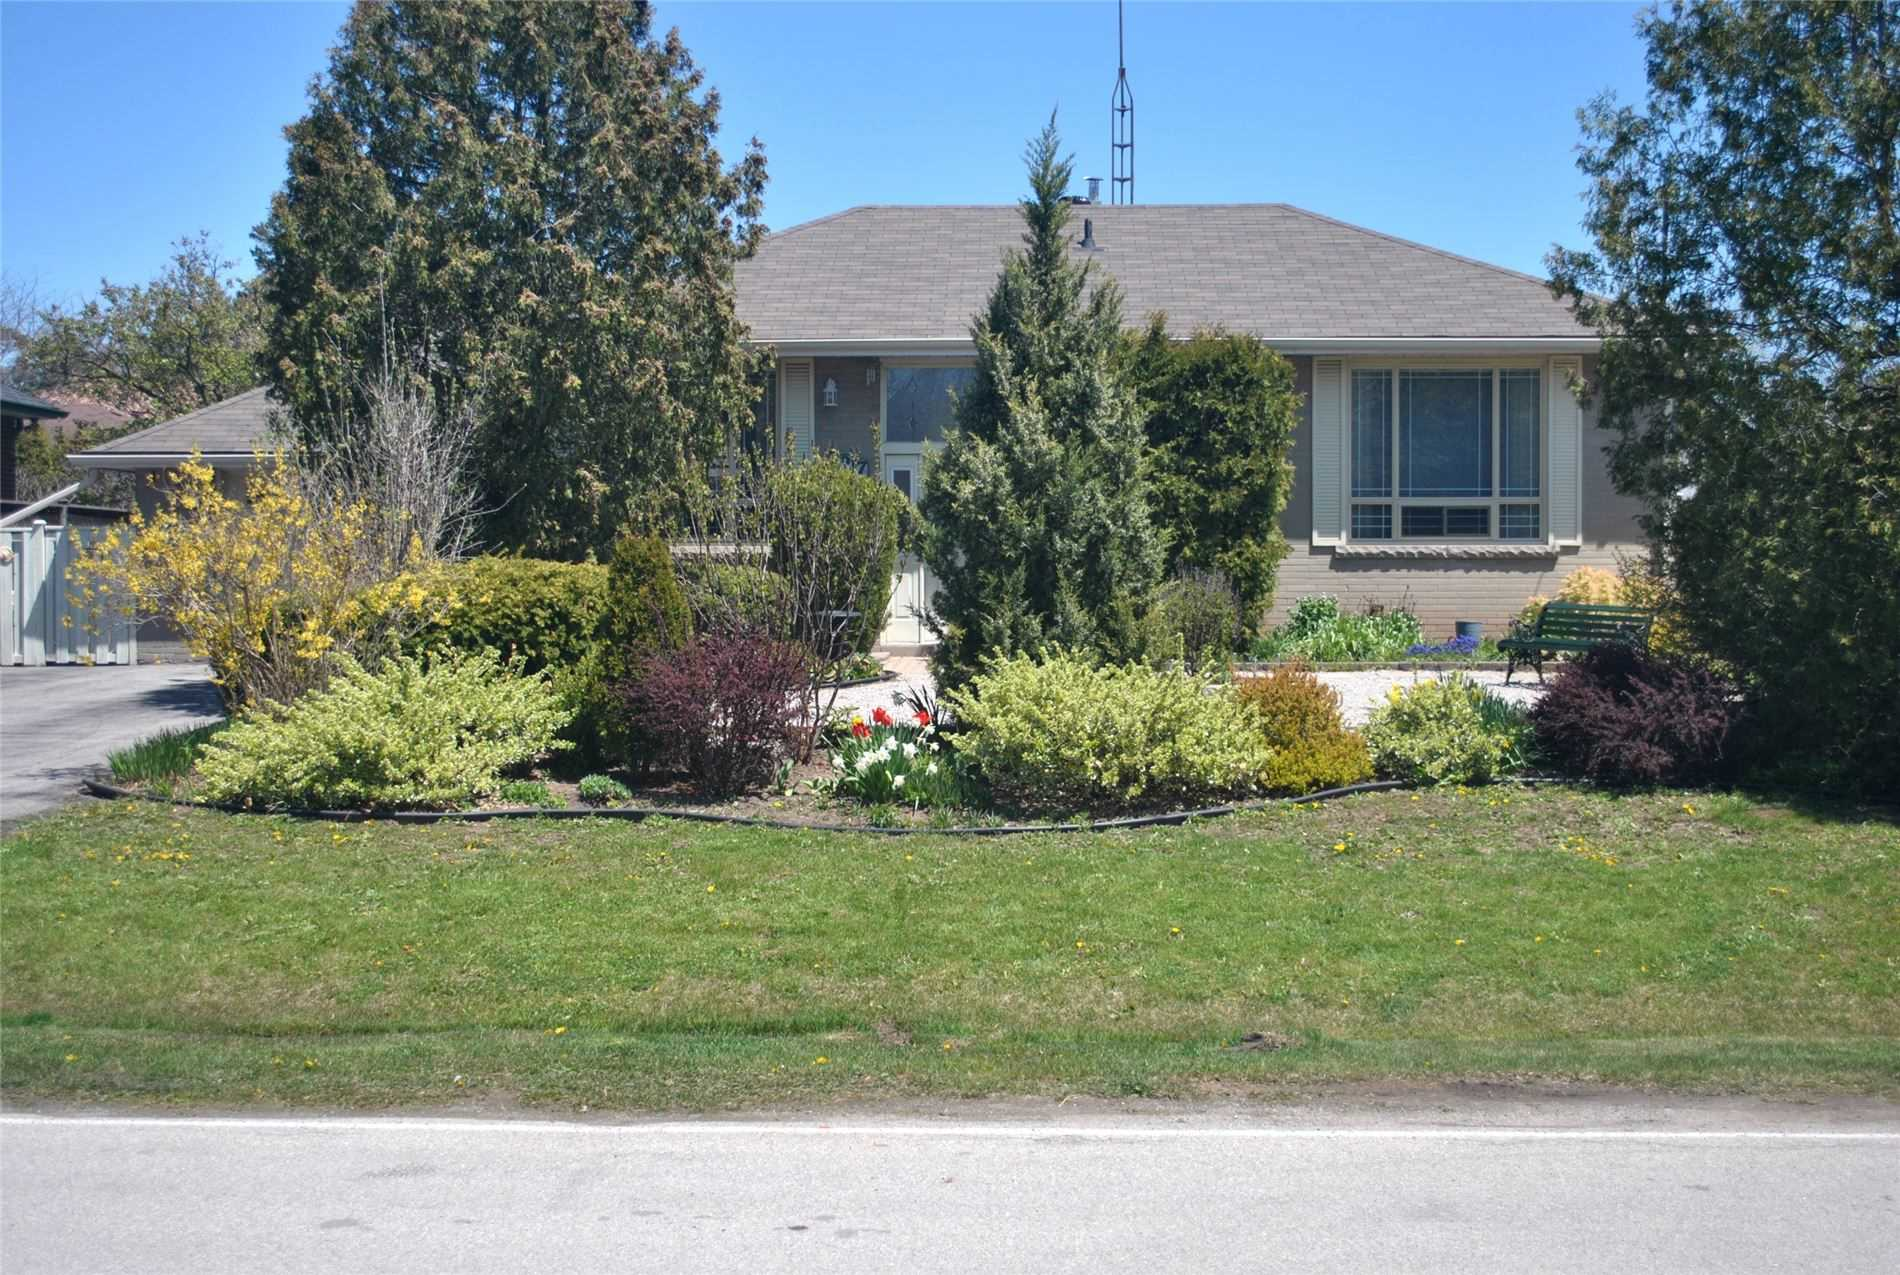 527 Weir Ave, Oakville, L6L4X3, 3 Bedrooms Bedrooms, ,2 BathroomsBathrooms,Detached,For Sale,Weir,W4762007